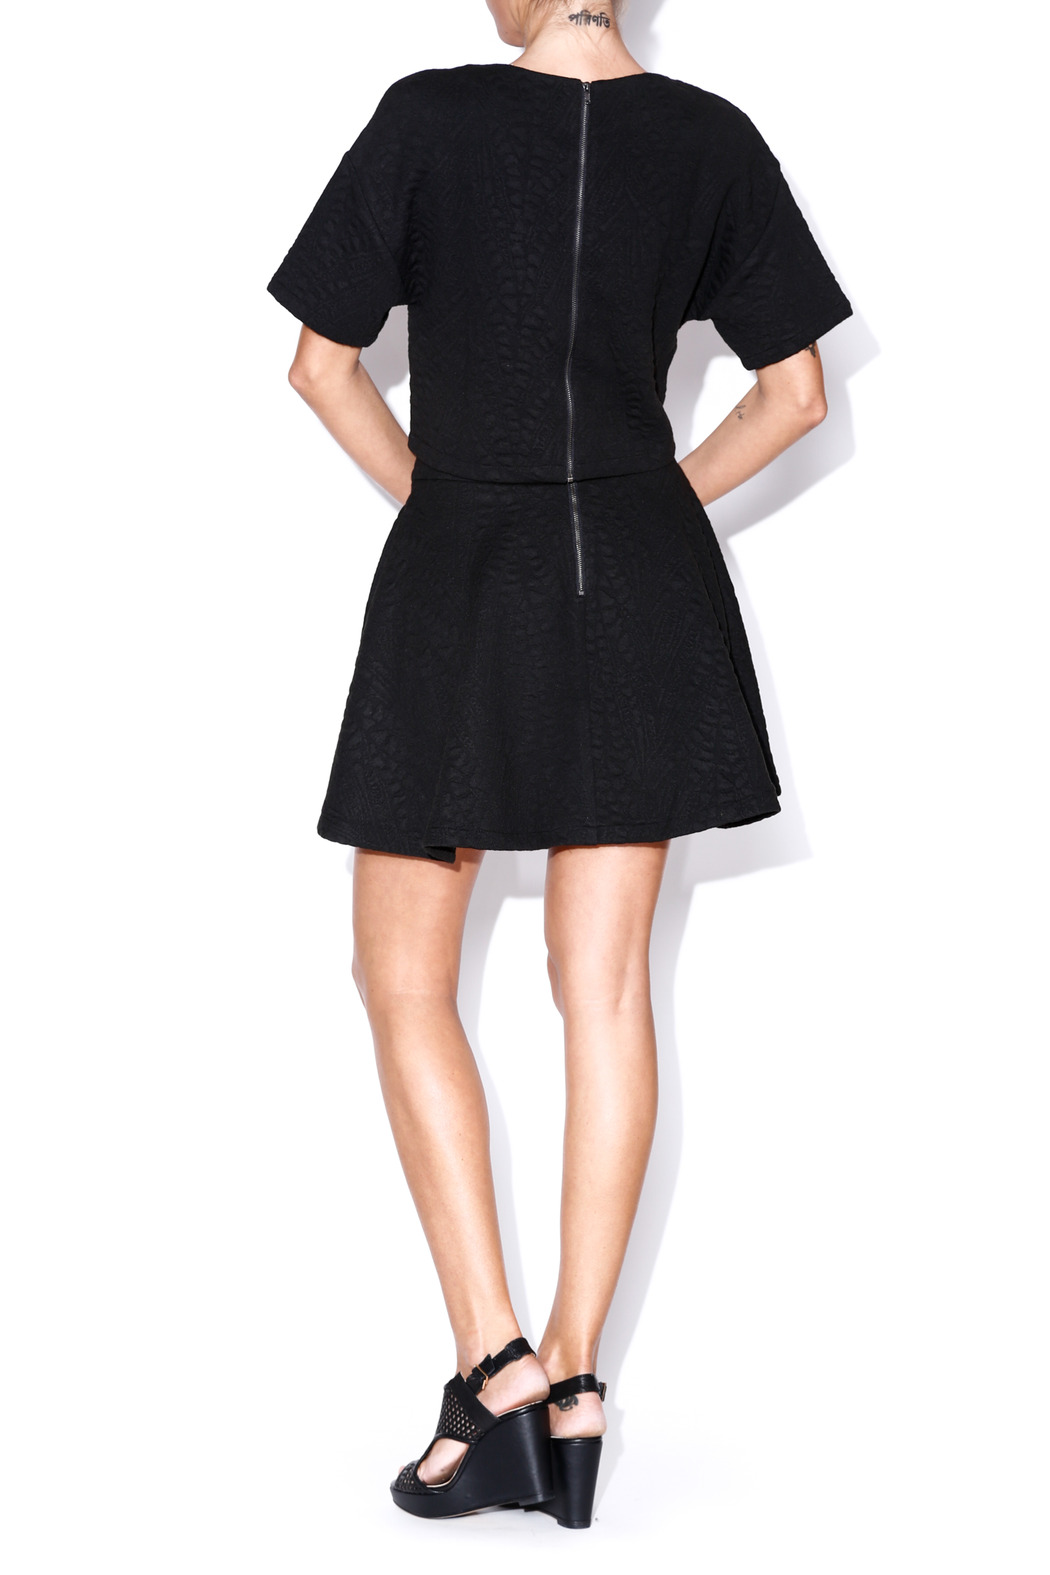 Lush Quilted Skater Skirt - Side Cropped Image